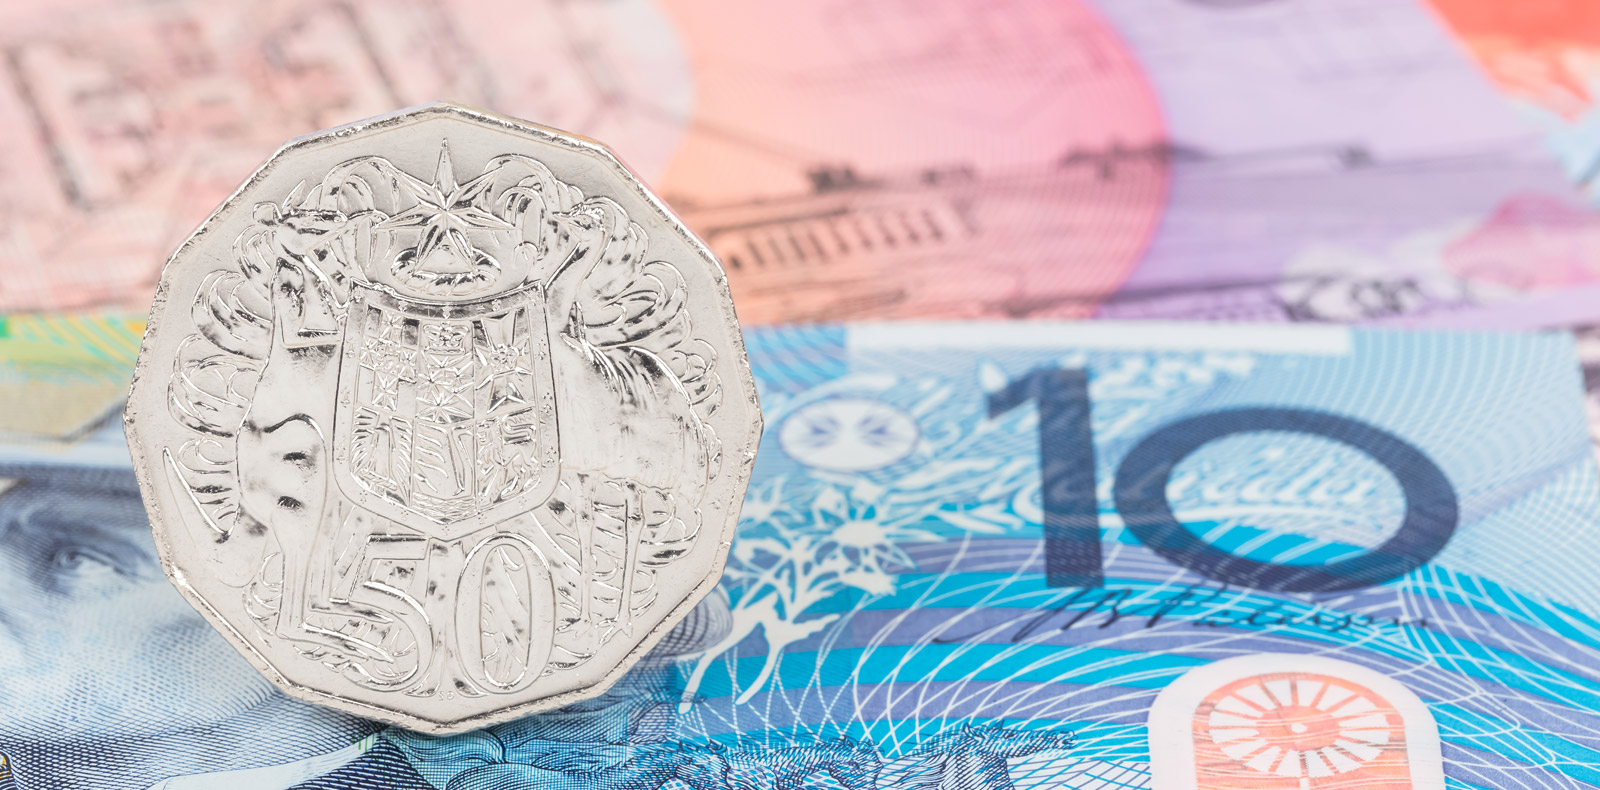 Could we see gains for Sterling against the Austalian Dollar due to Trade War?